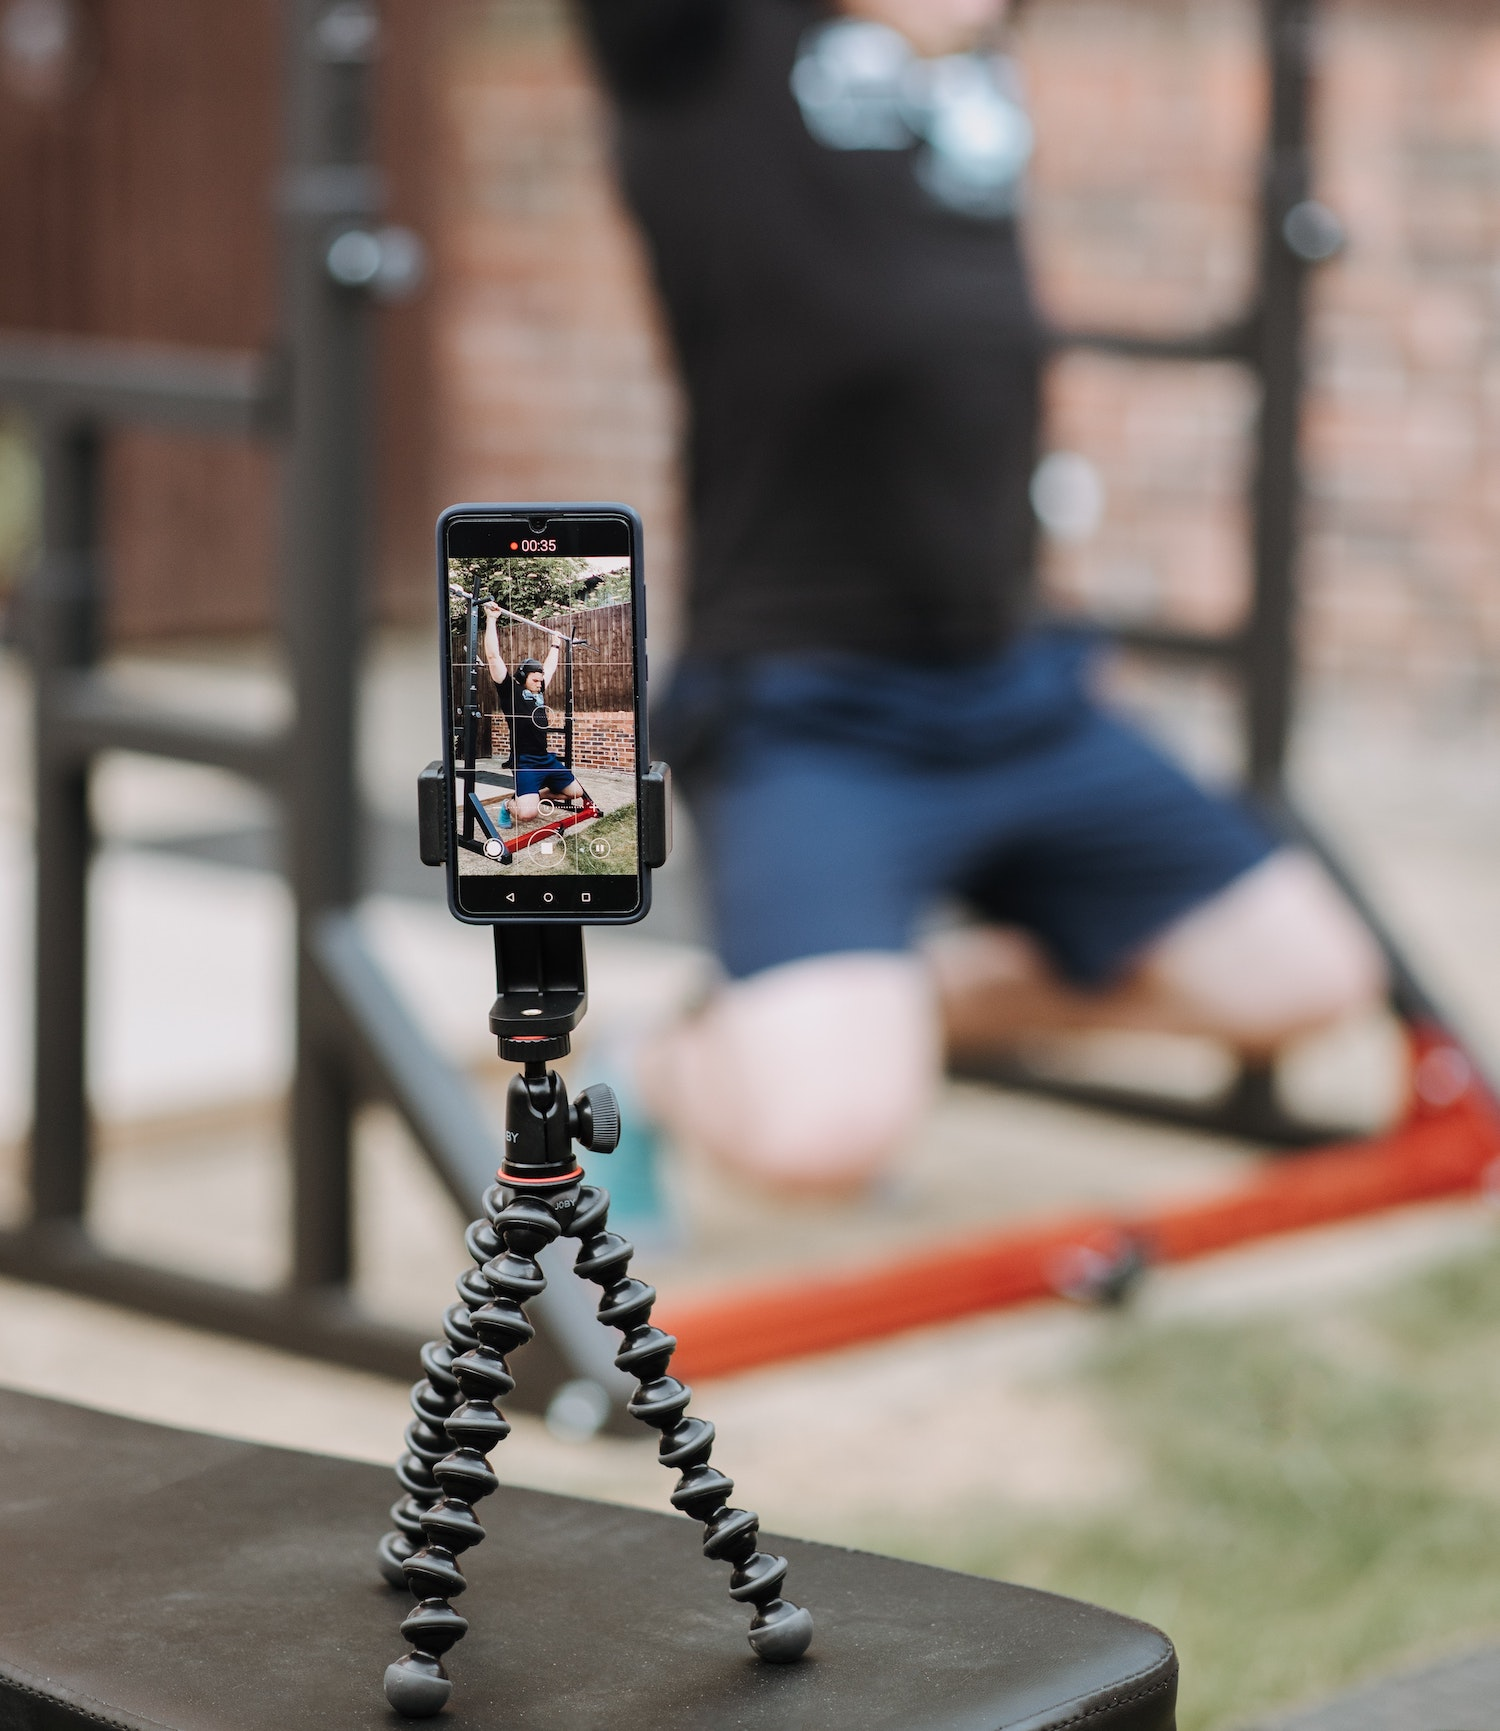 Phone on tripod recording man working out